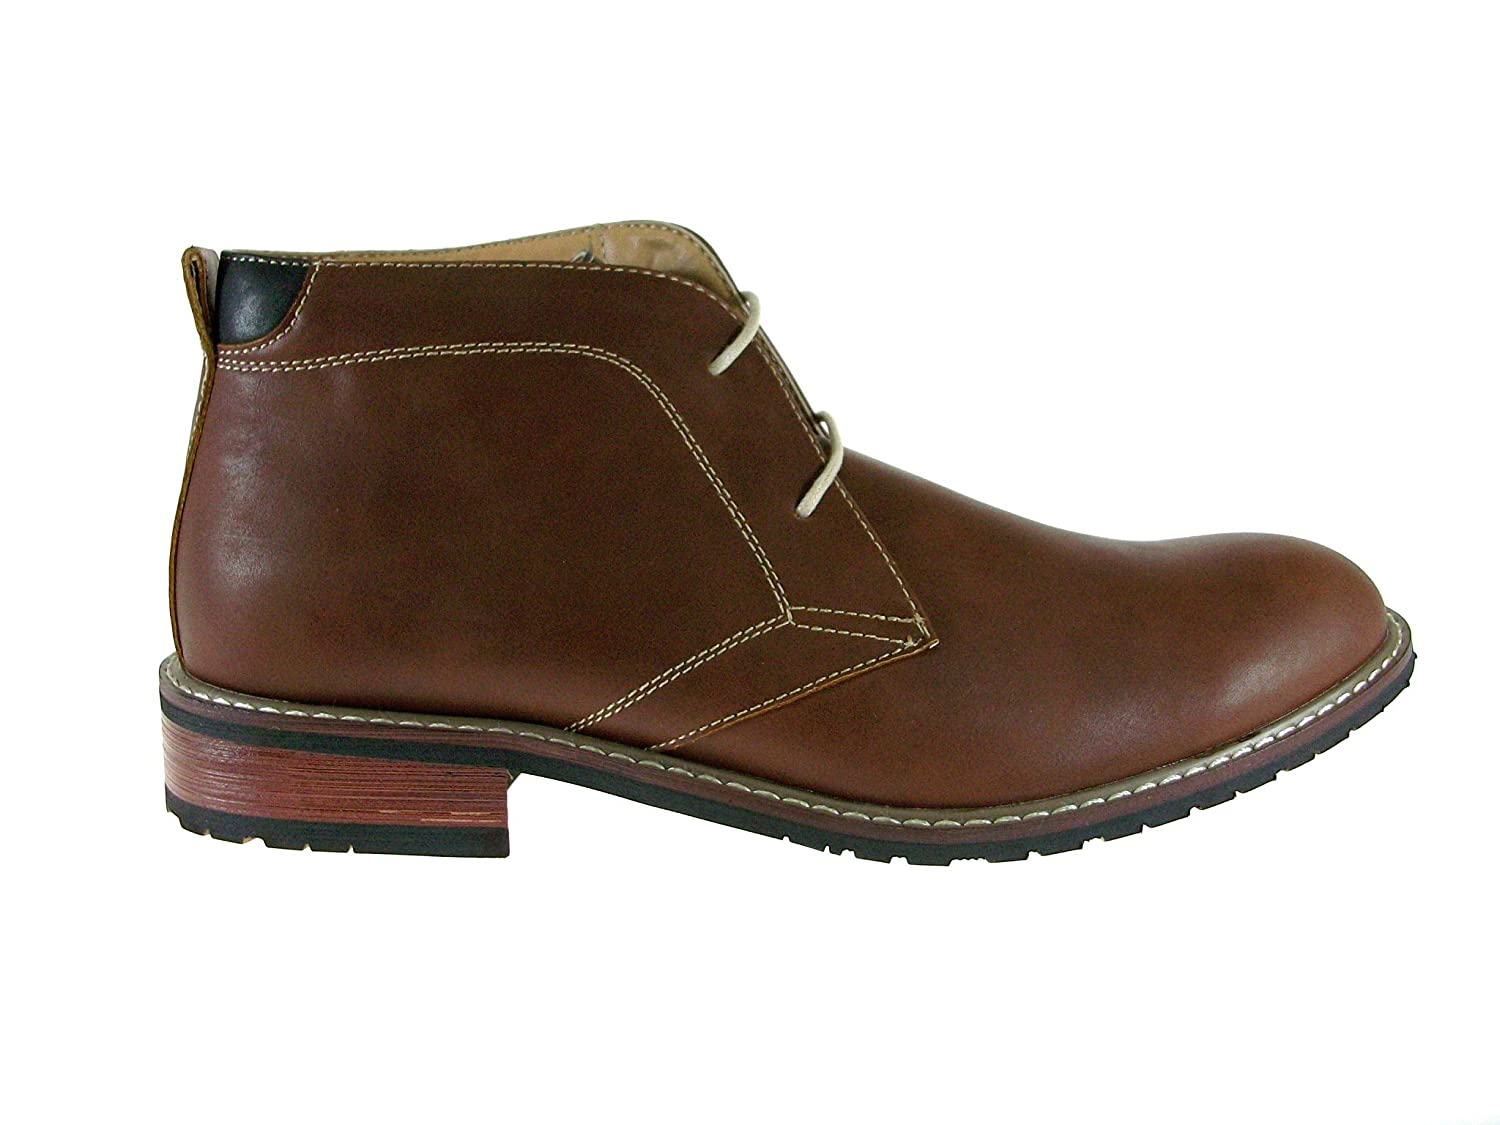 Jazame Mens 617119 Casual Chukka Mid-Top Lace Up Ankle Boots